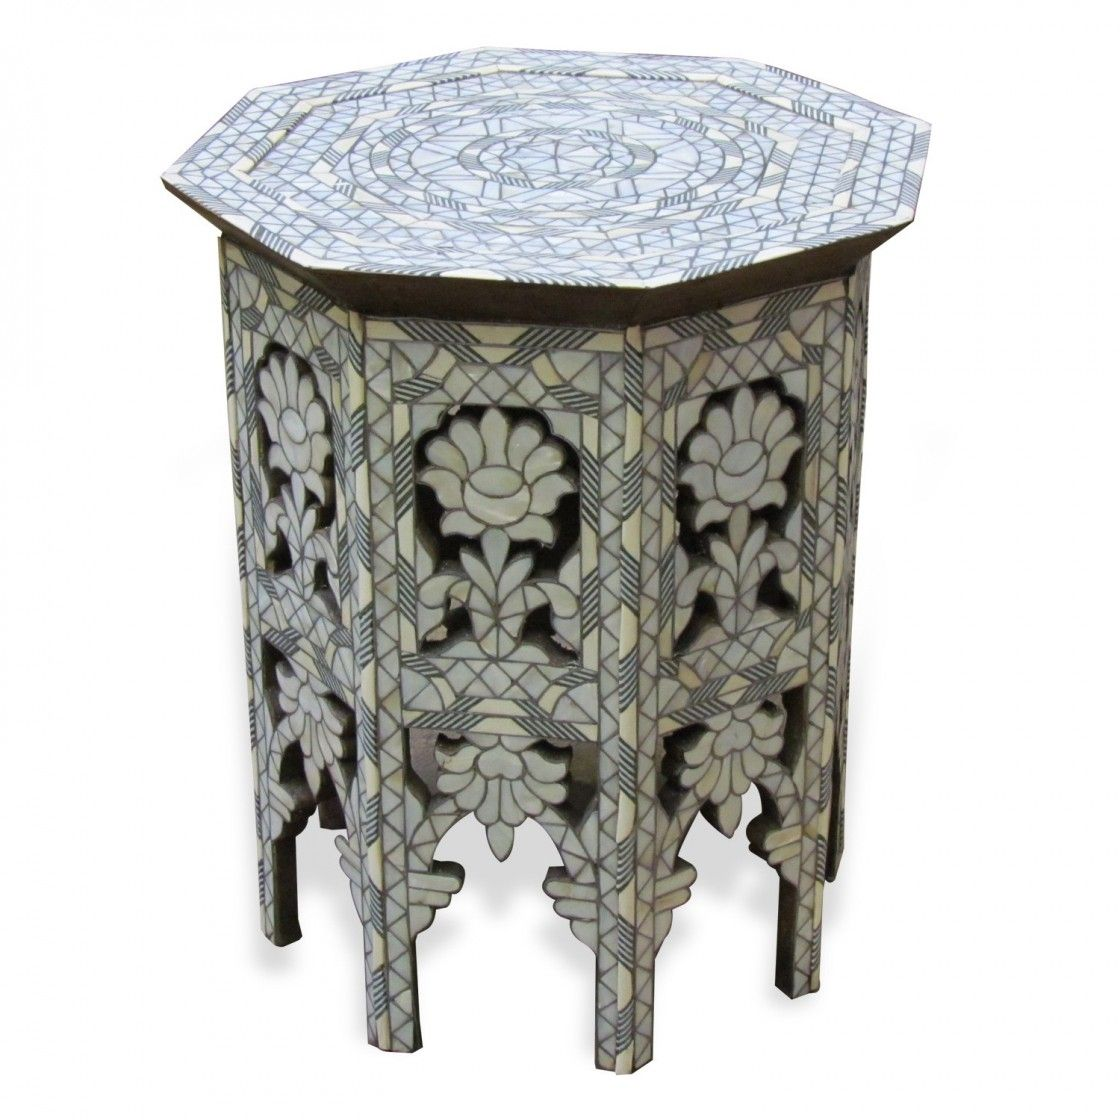 Beautiful Light Grey Floral Mosaic Pattern Moroccan Syrian Furniture Side  Table Of Pearl Style With White